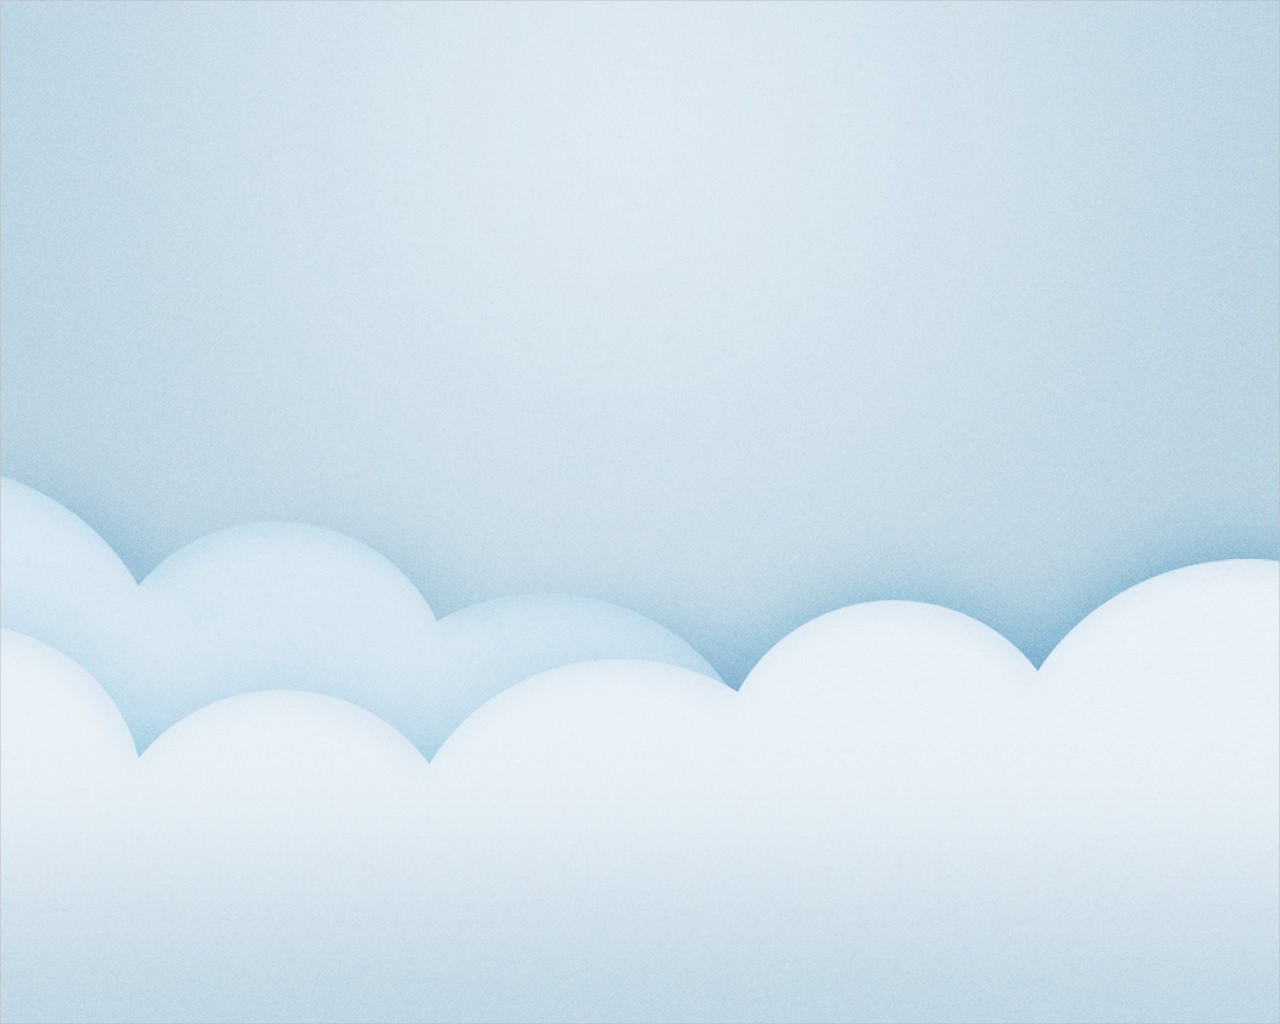 Baby Blue Minimalistic Clouds Background